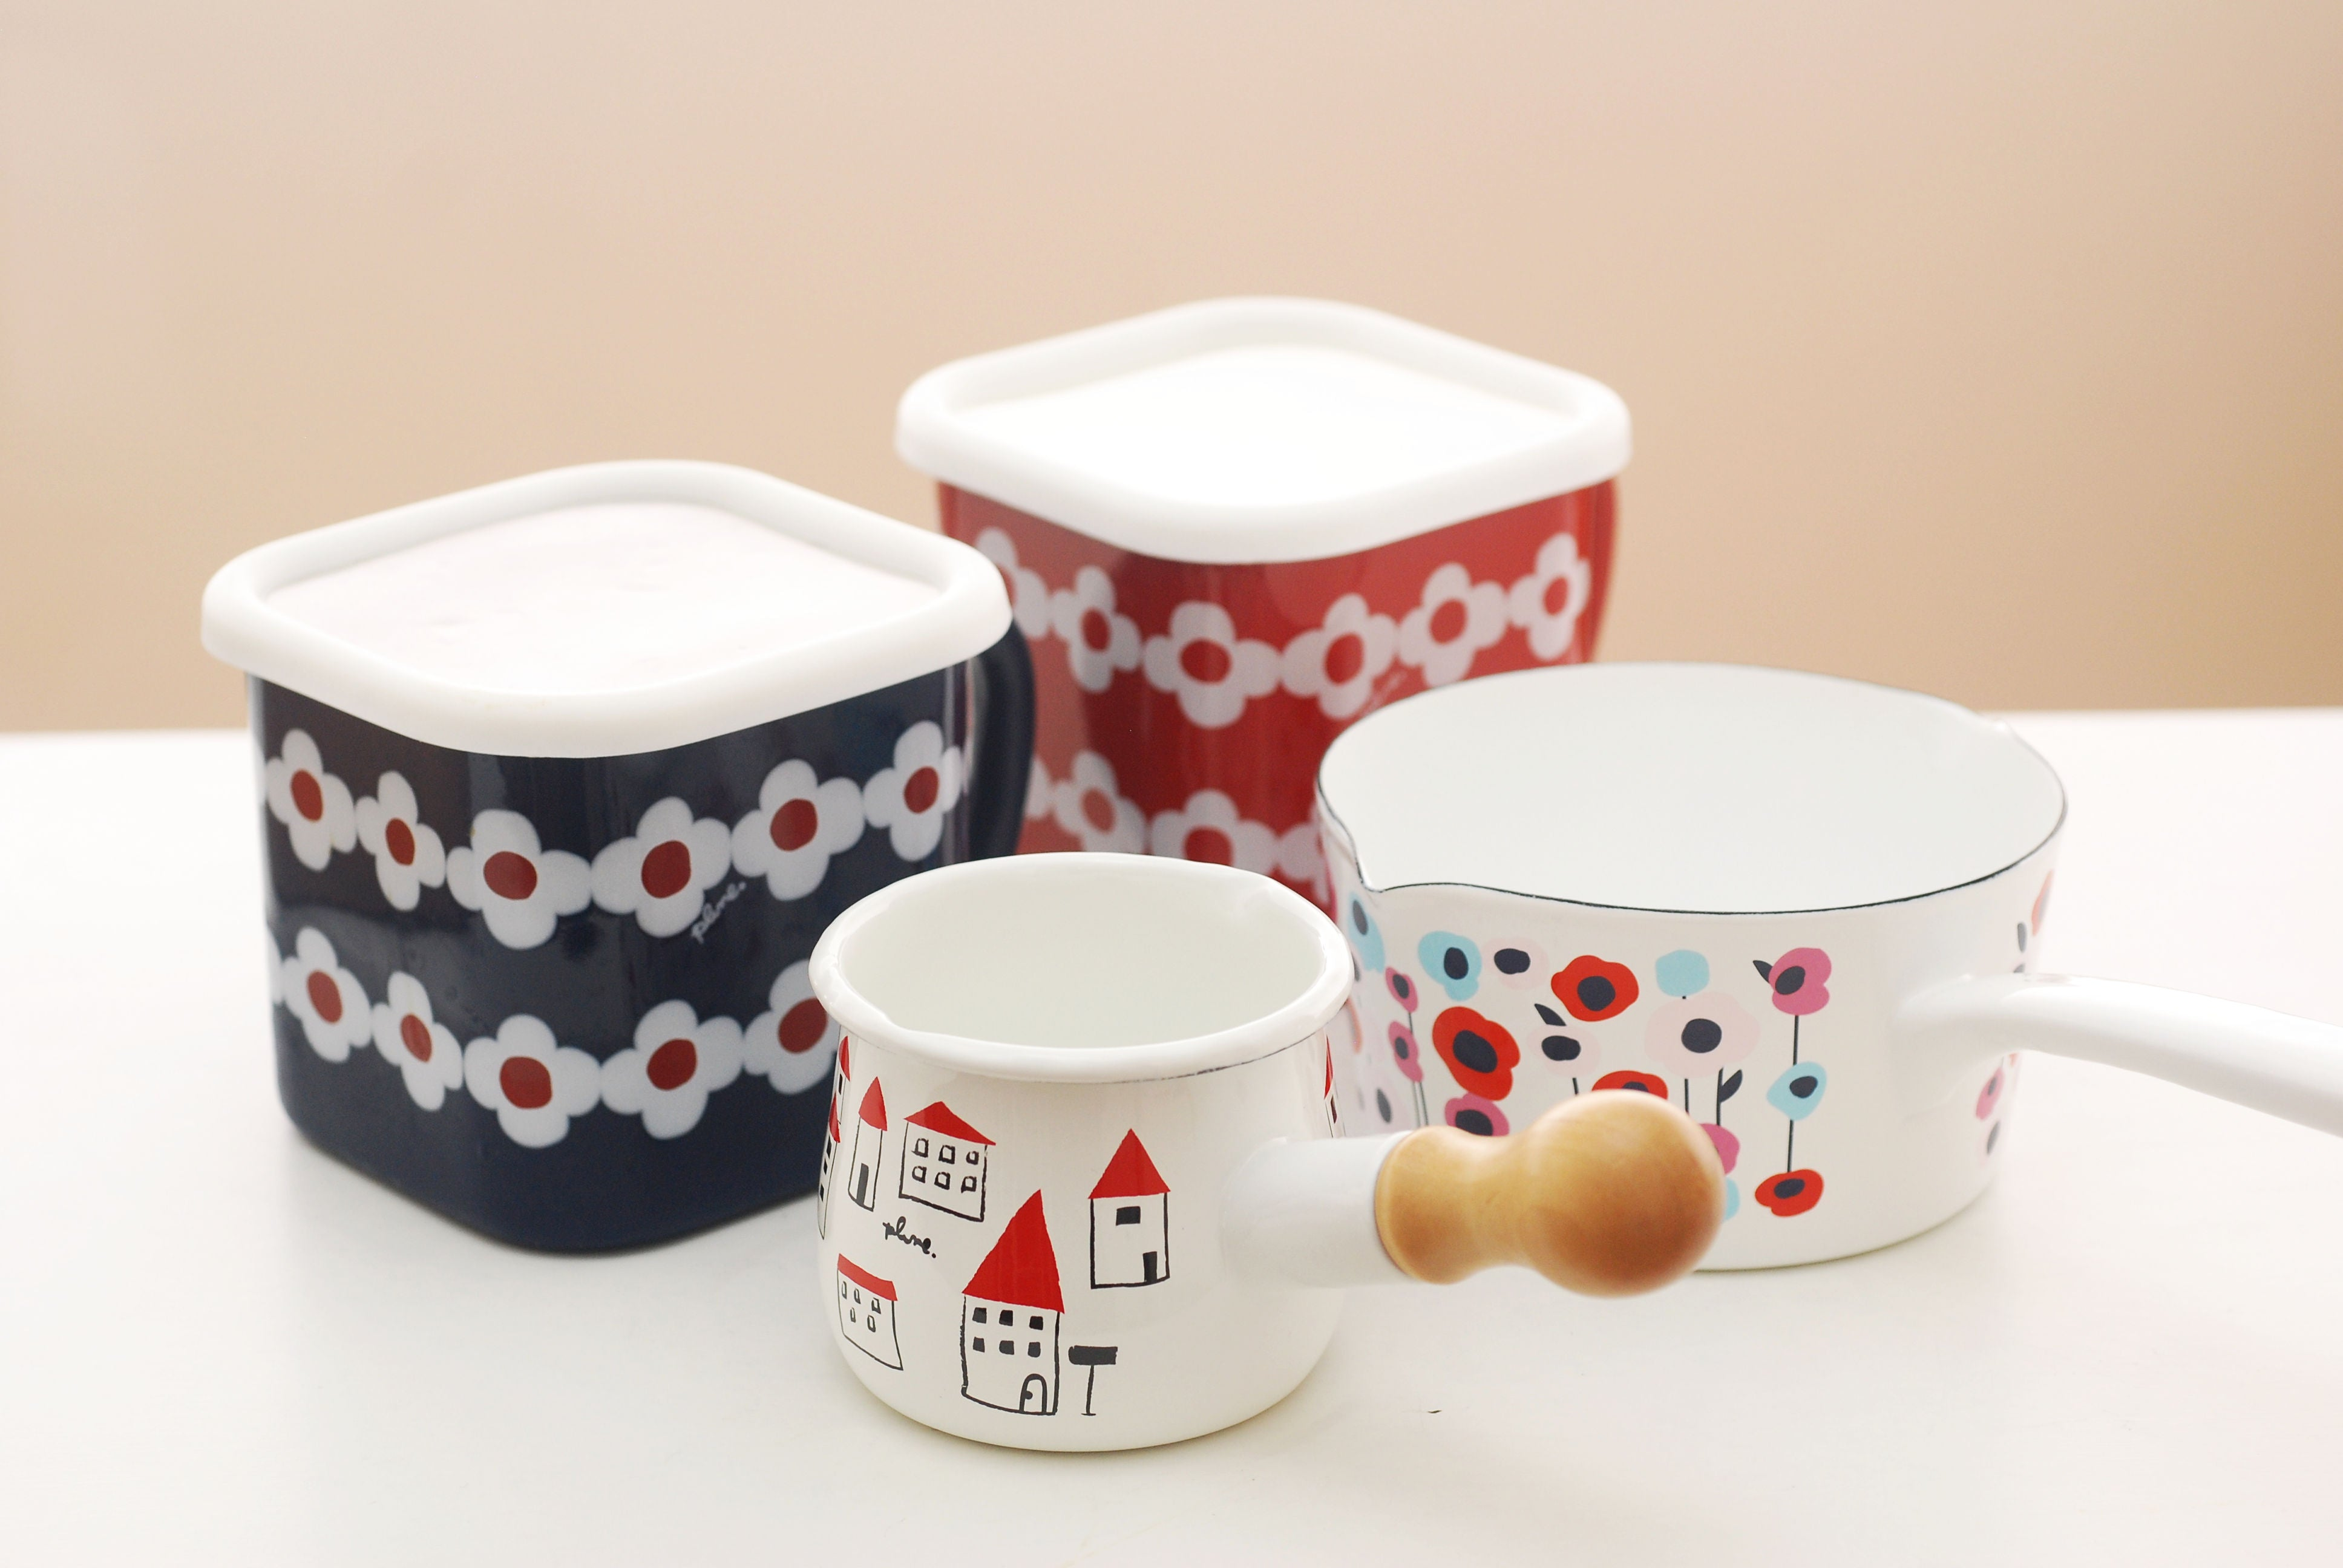 Globalkitchen Japan sells carefully selected enameled ware with good functionality and design.